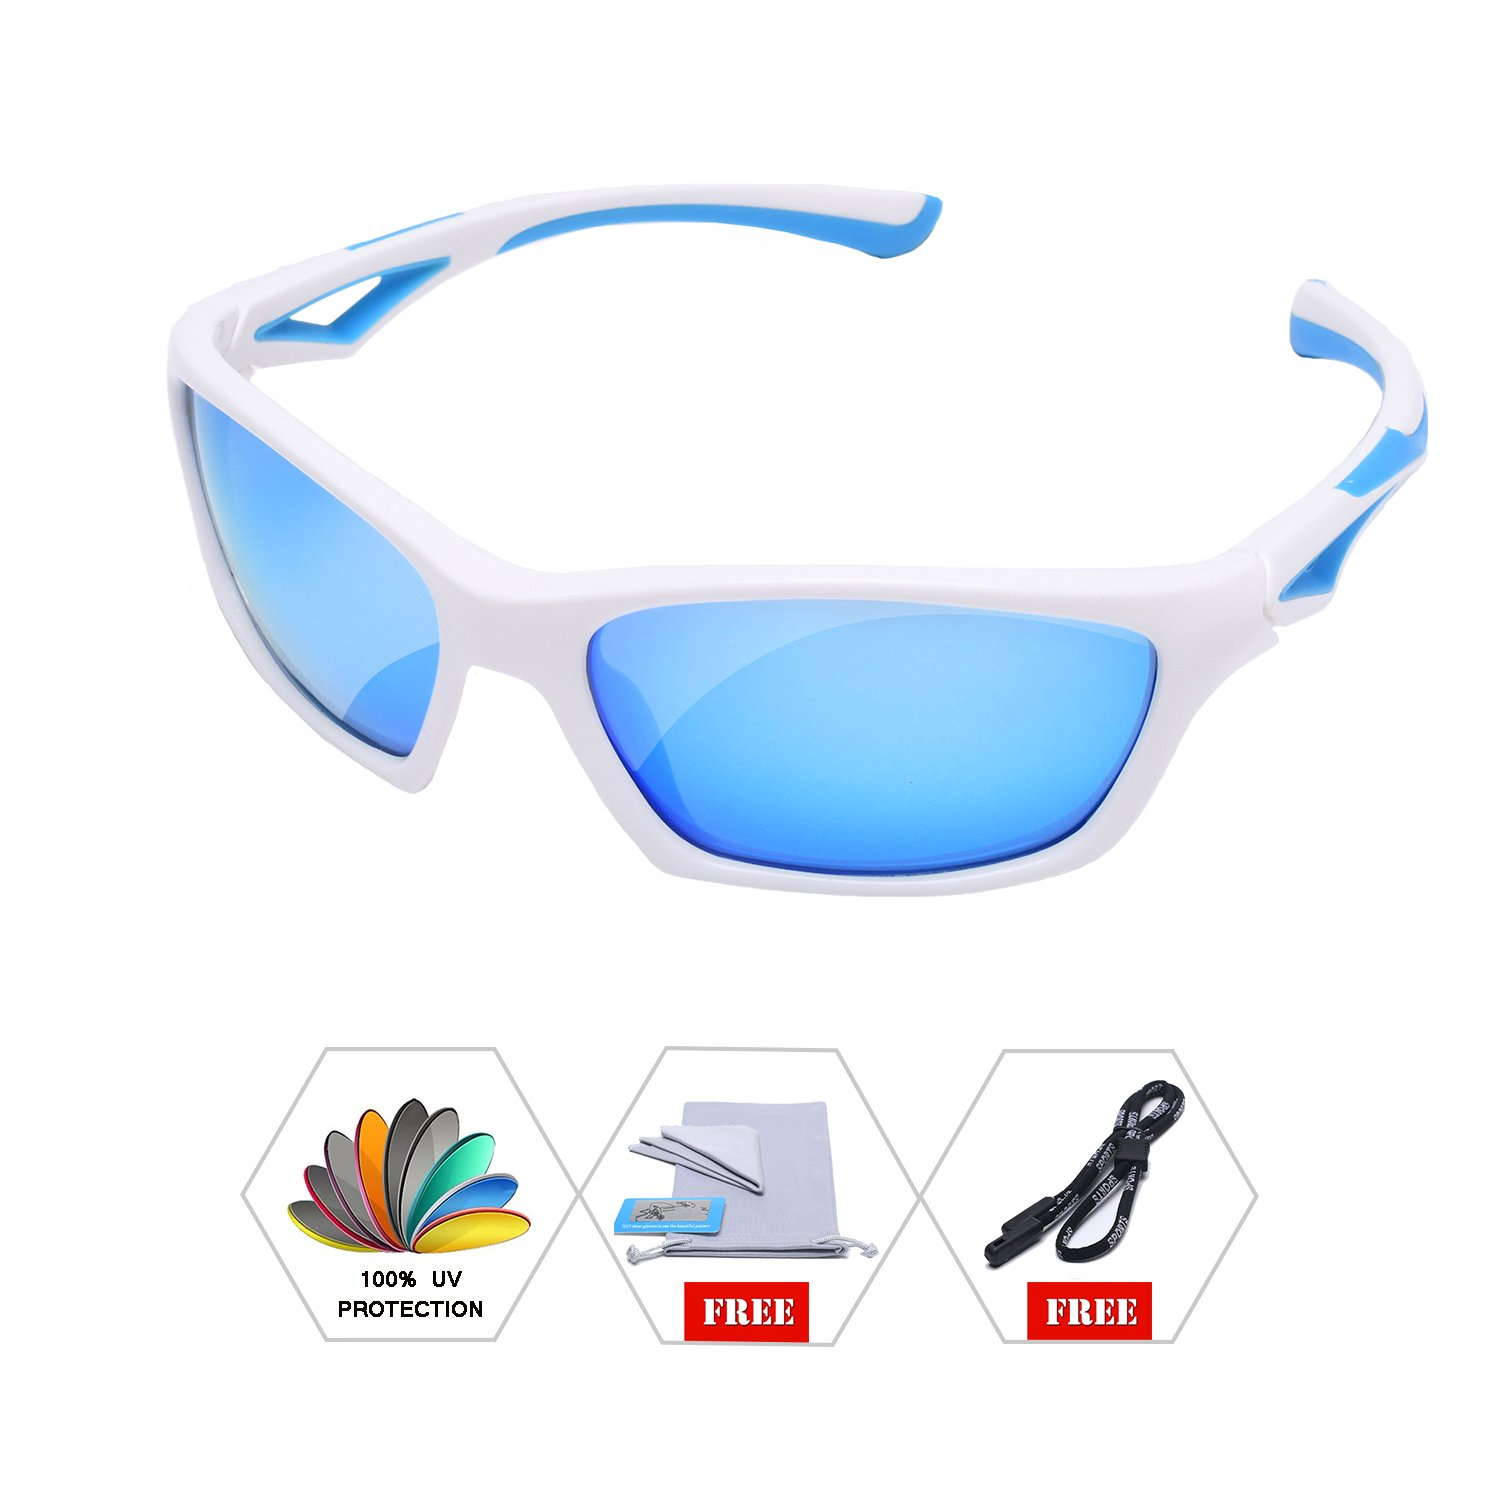 AODUOKE Sports Polarized Sunglasses For Kids Children Boys And Girls Shades With Strap TR90 Unbreakable Frame (White/Blue | Blue Lens)